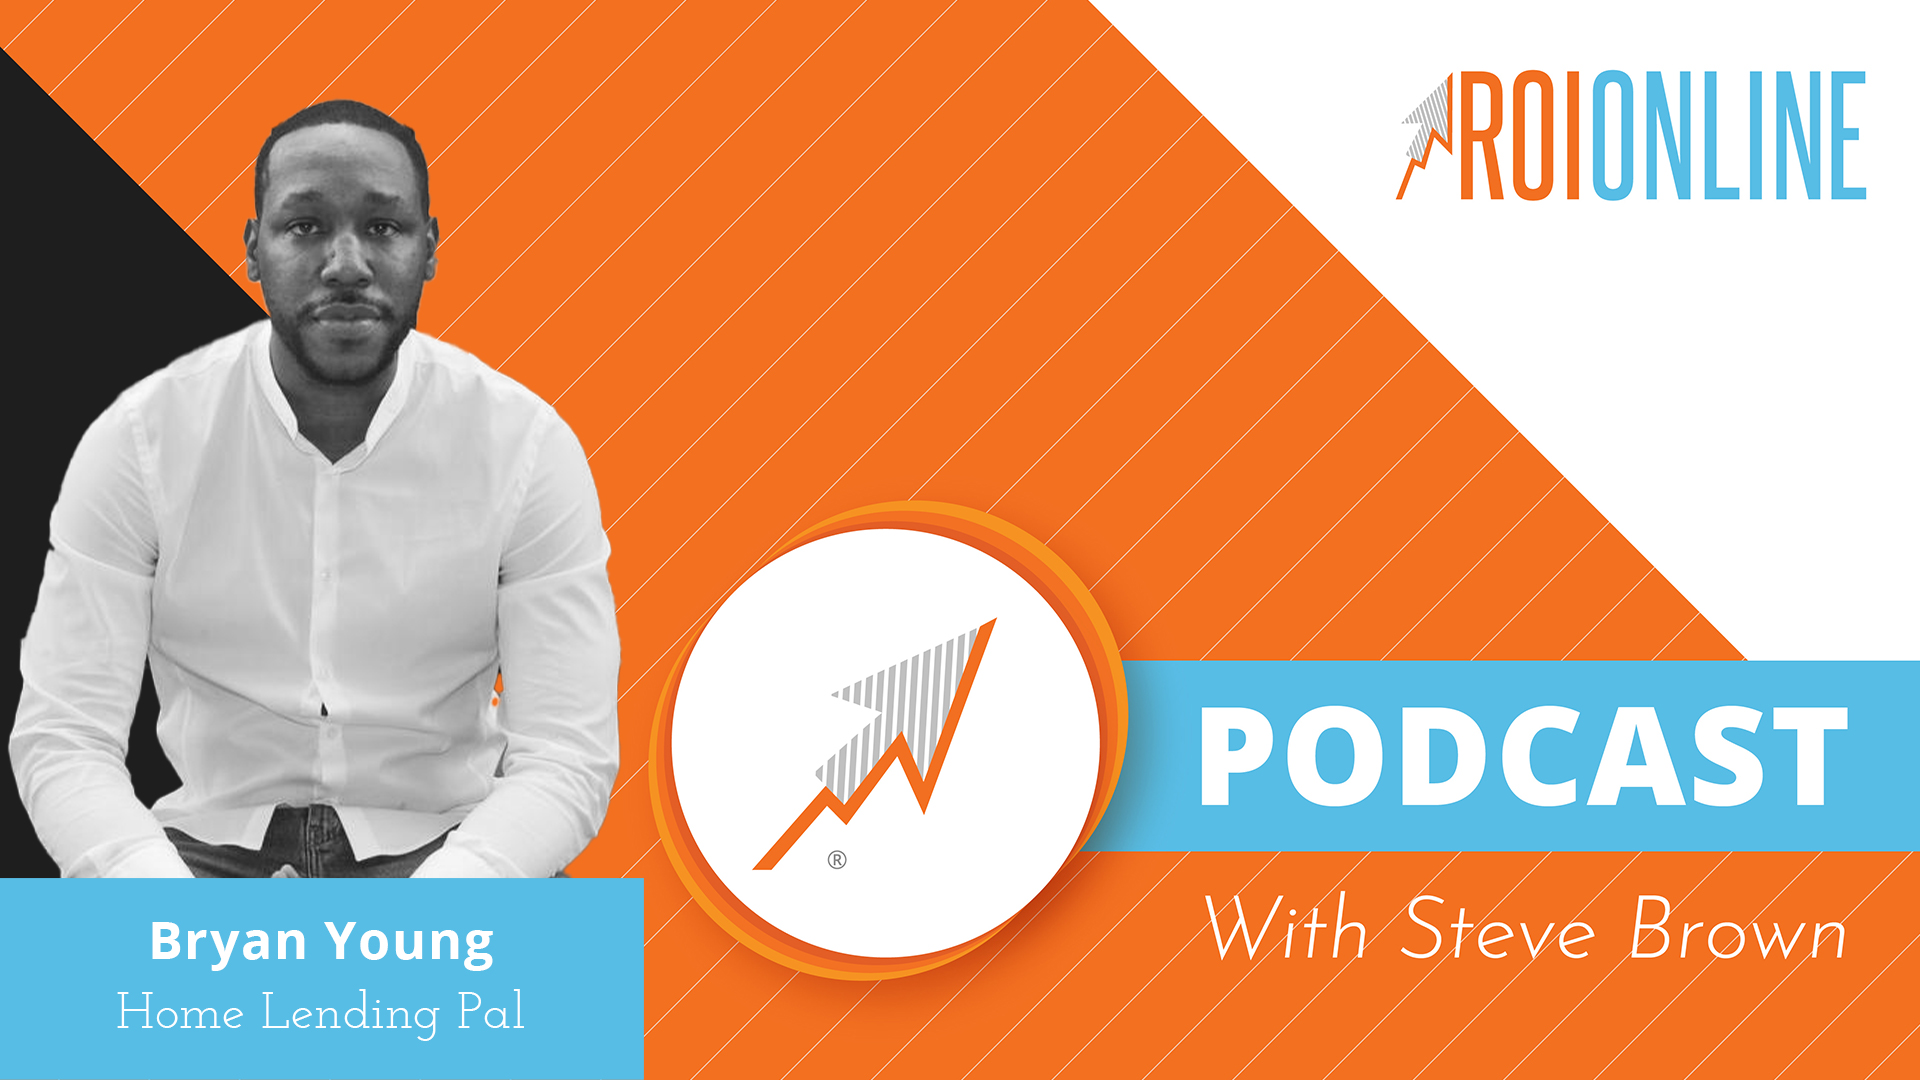 ROI Online Podcast thumbnail graphic of entrepreneur Bryan Young